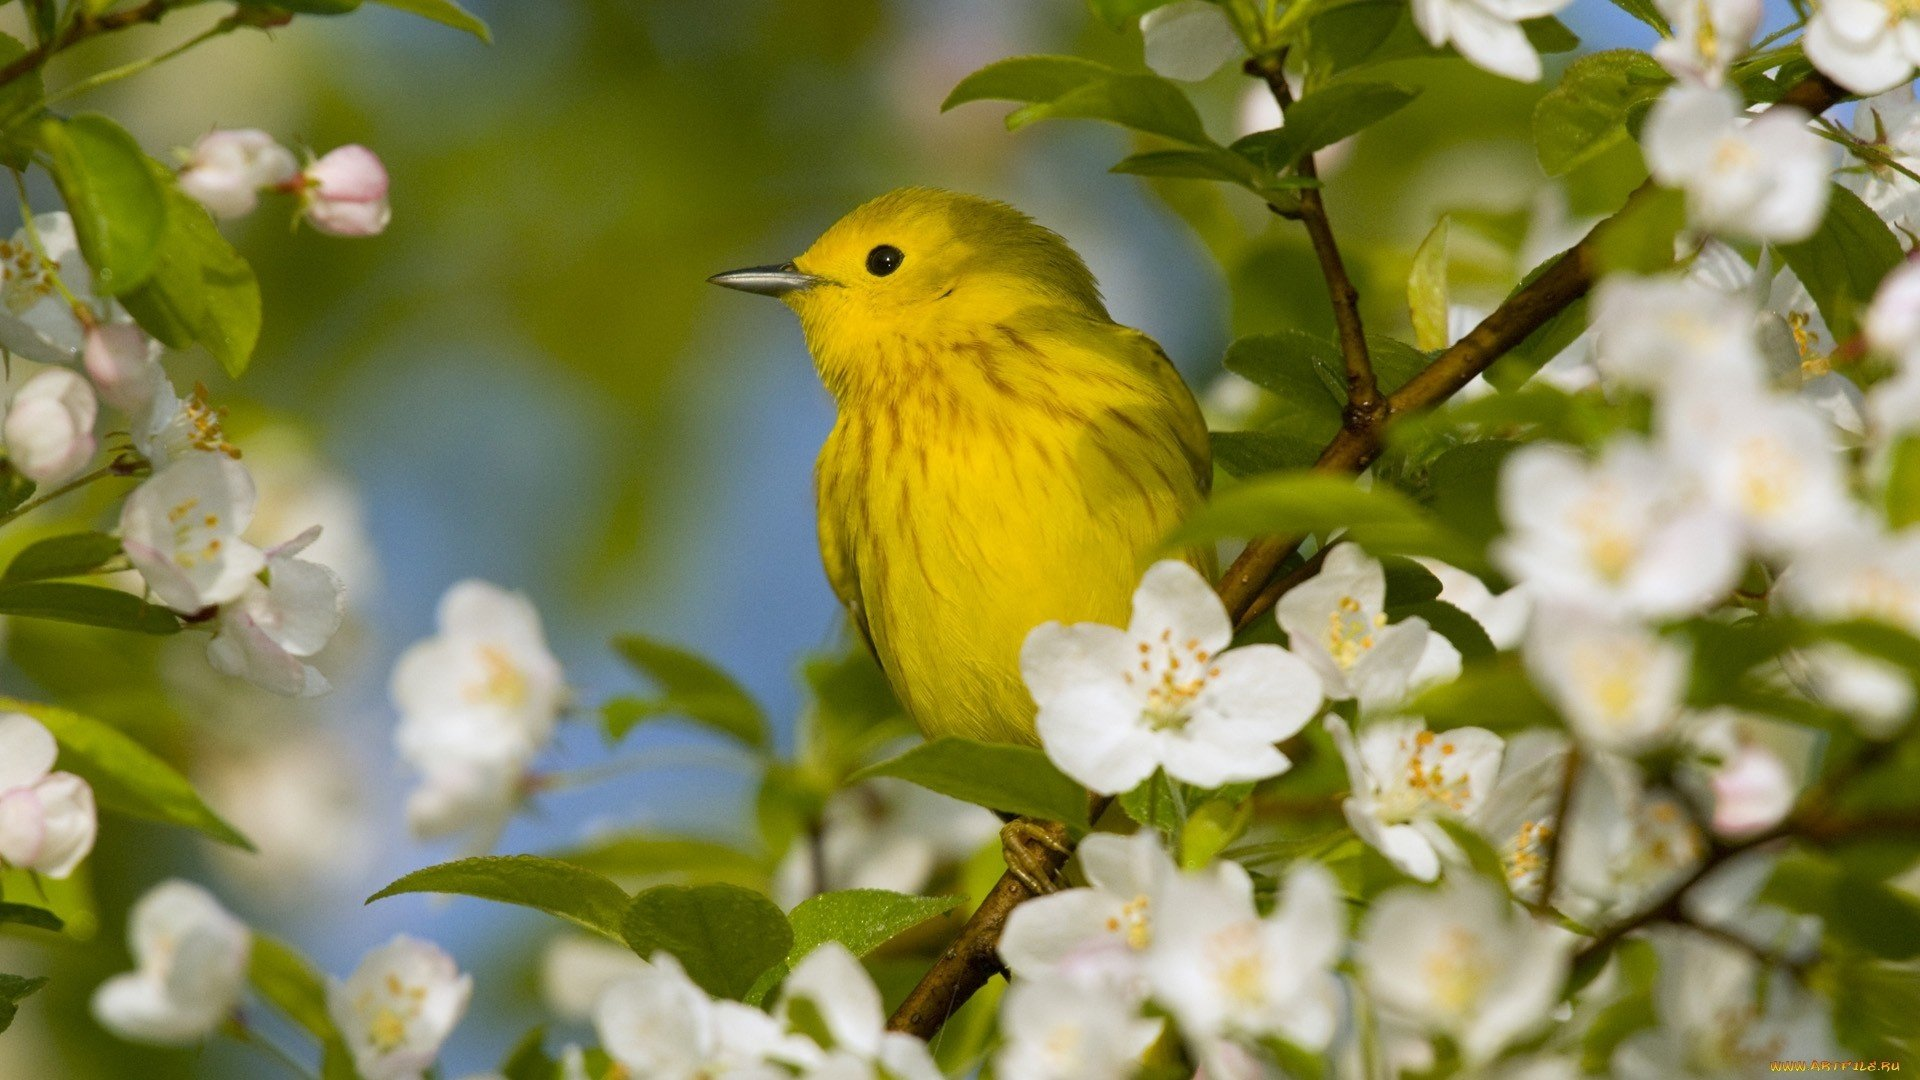 Download beautiful nature birds wallpapers gallery - Hd pics of nature with birds ...